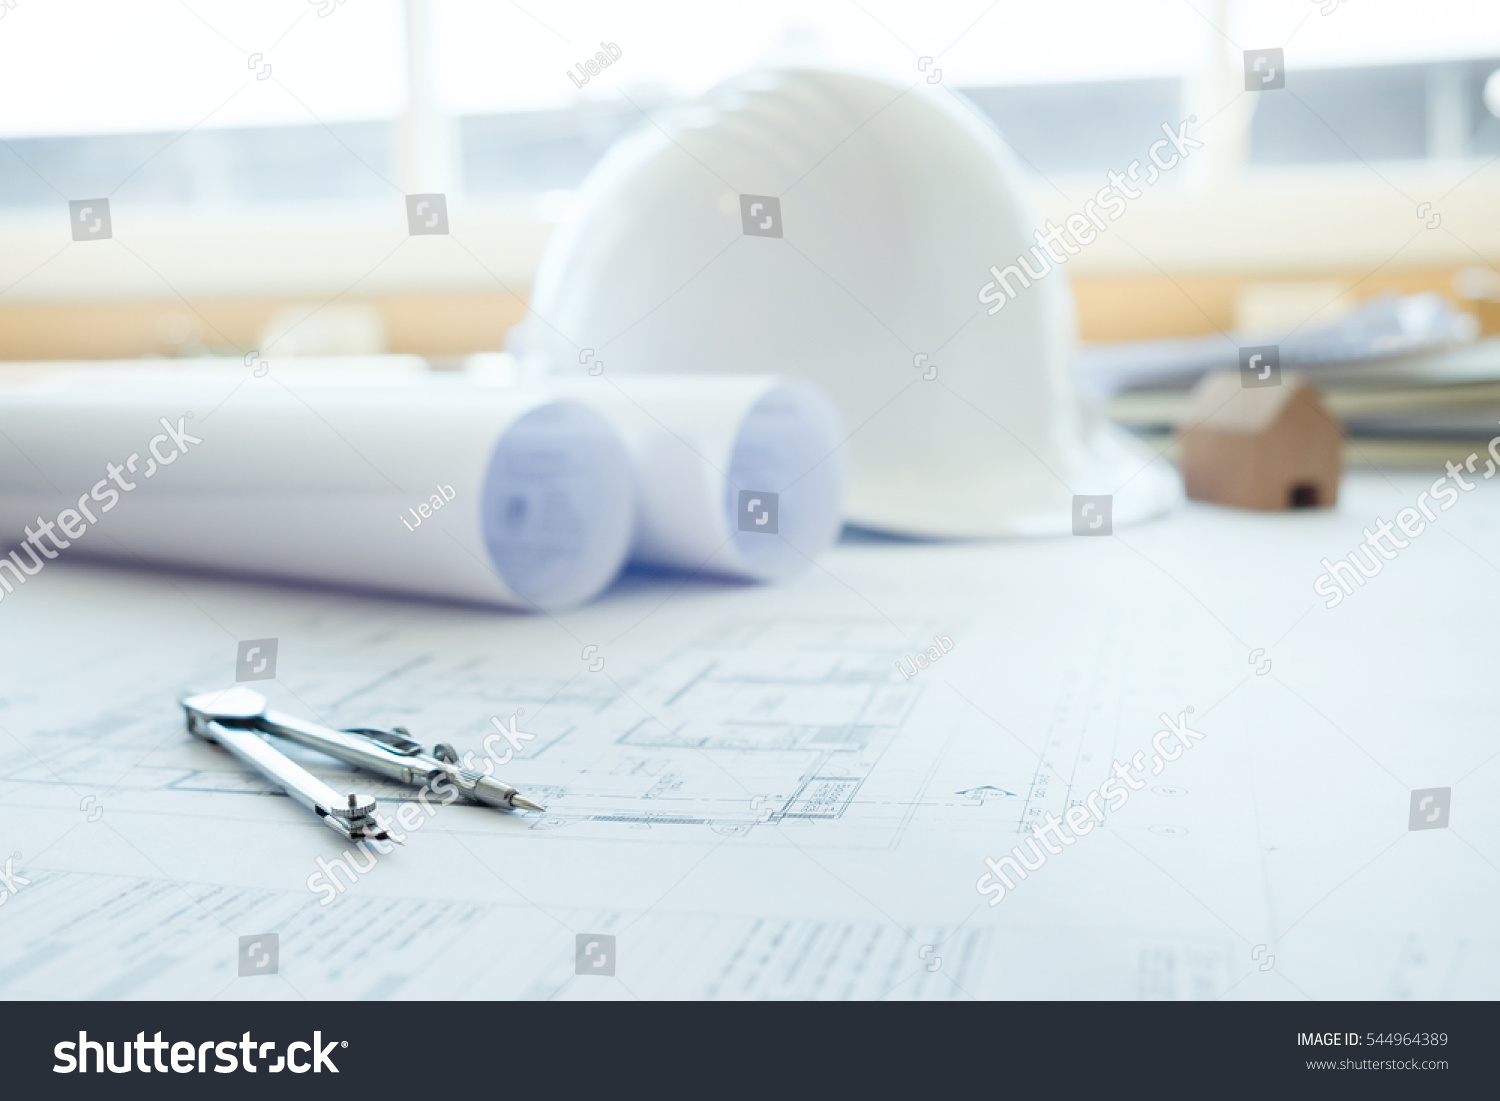 Construction repair work drawings building architectural stock photo construction repair work drawings building architectural stock photo royalty free 544964389 shutterstock malvernweather Image collections